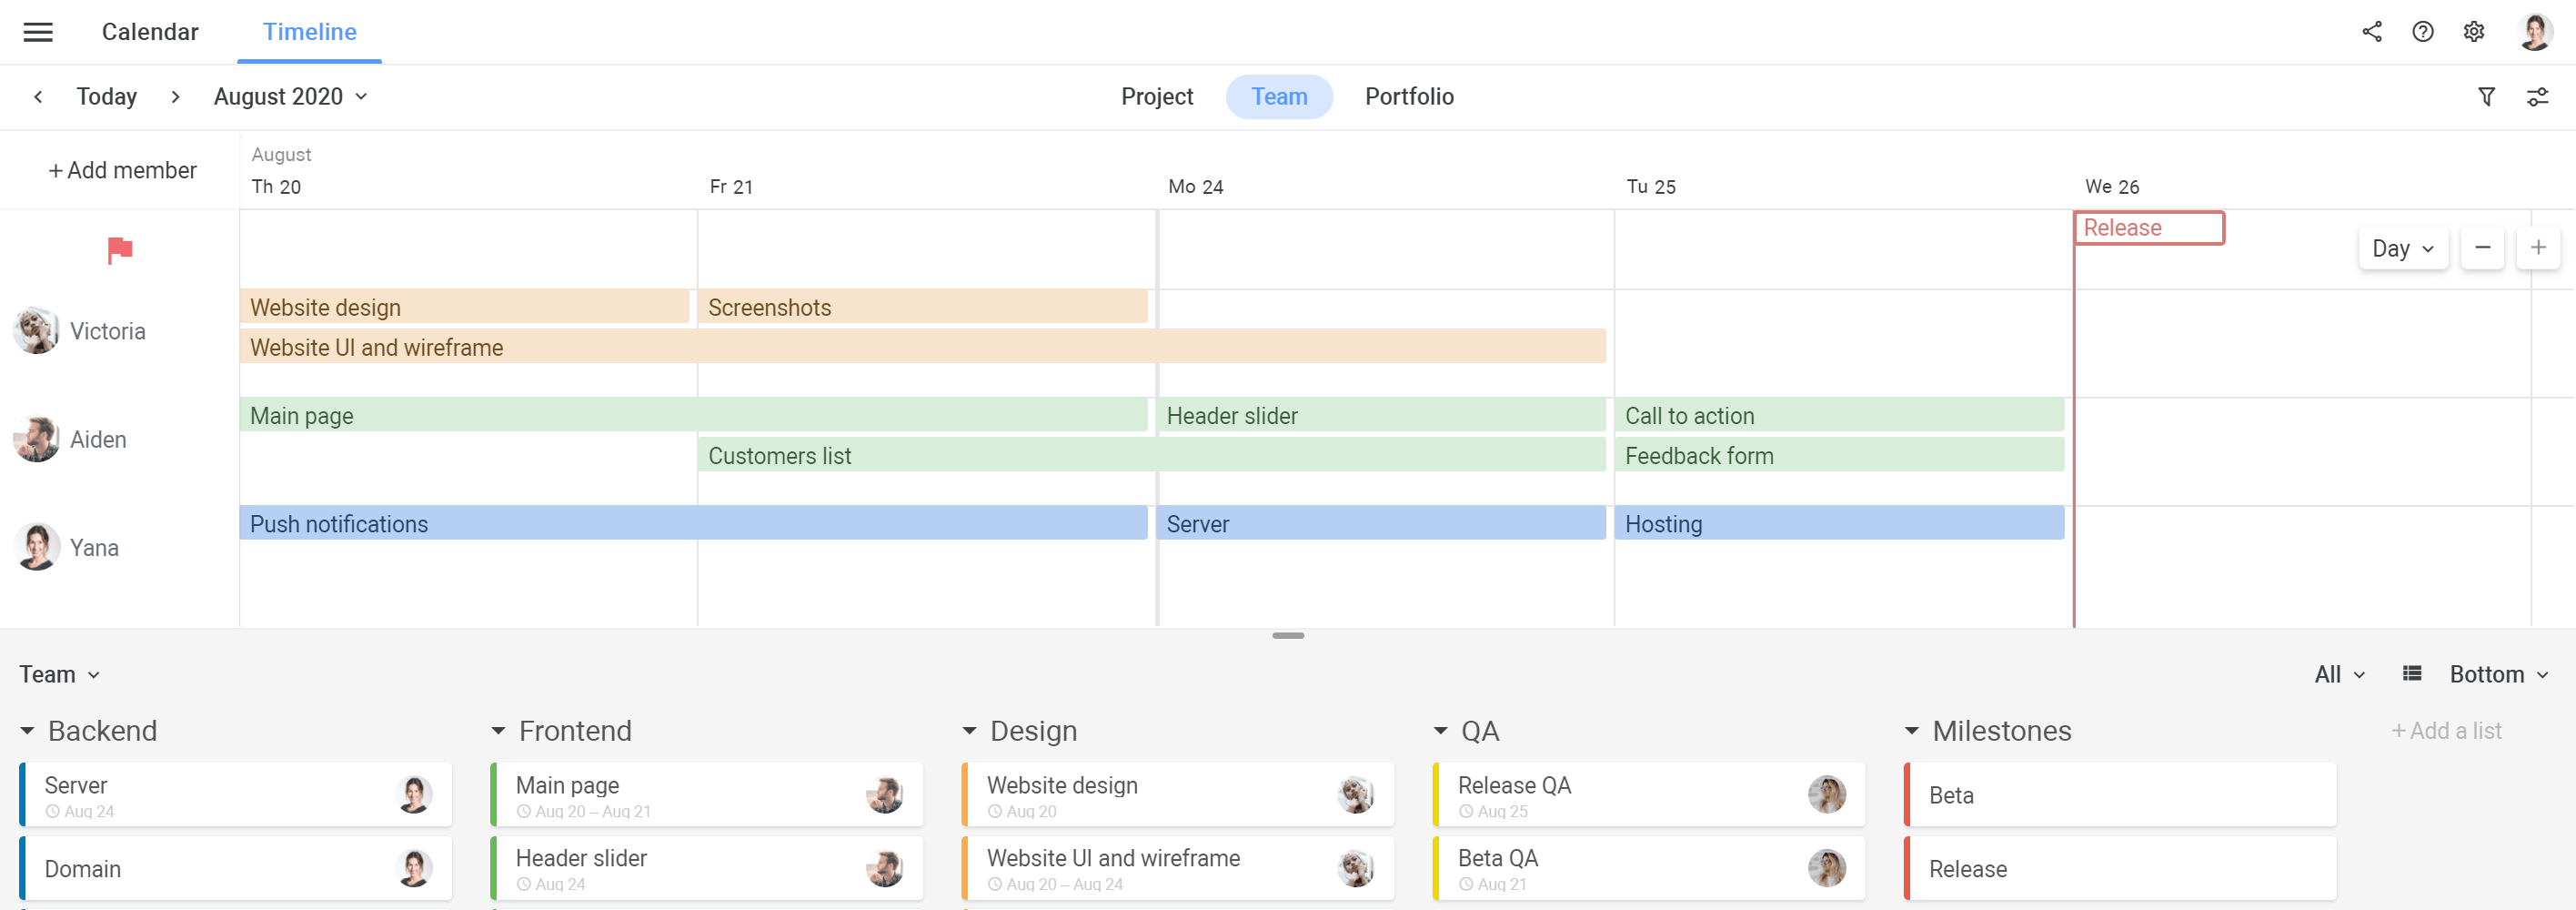 Planyway Getting Stated Team Timeline